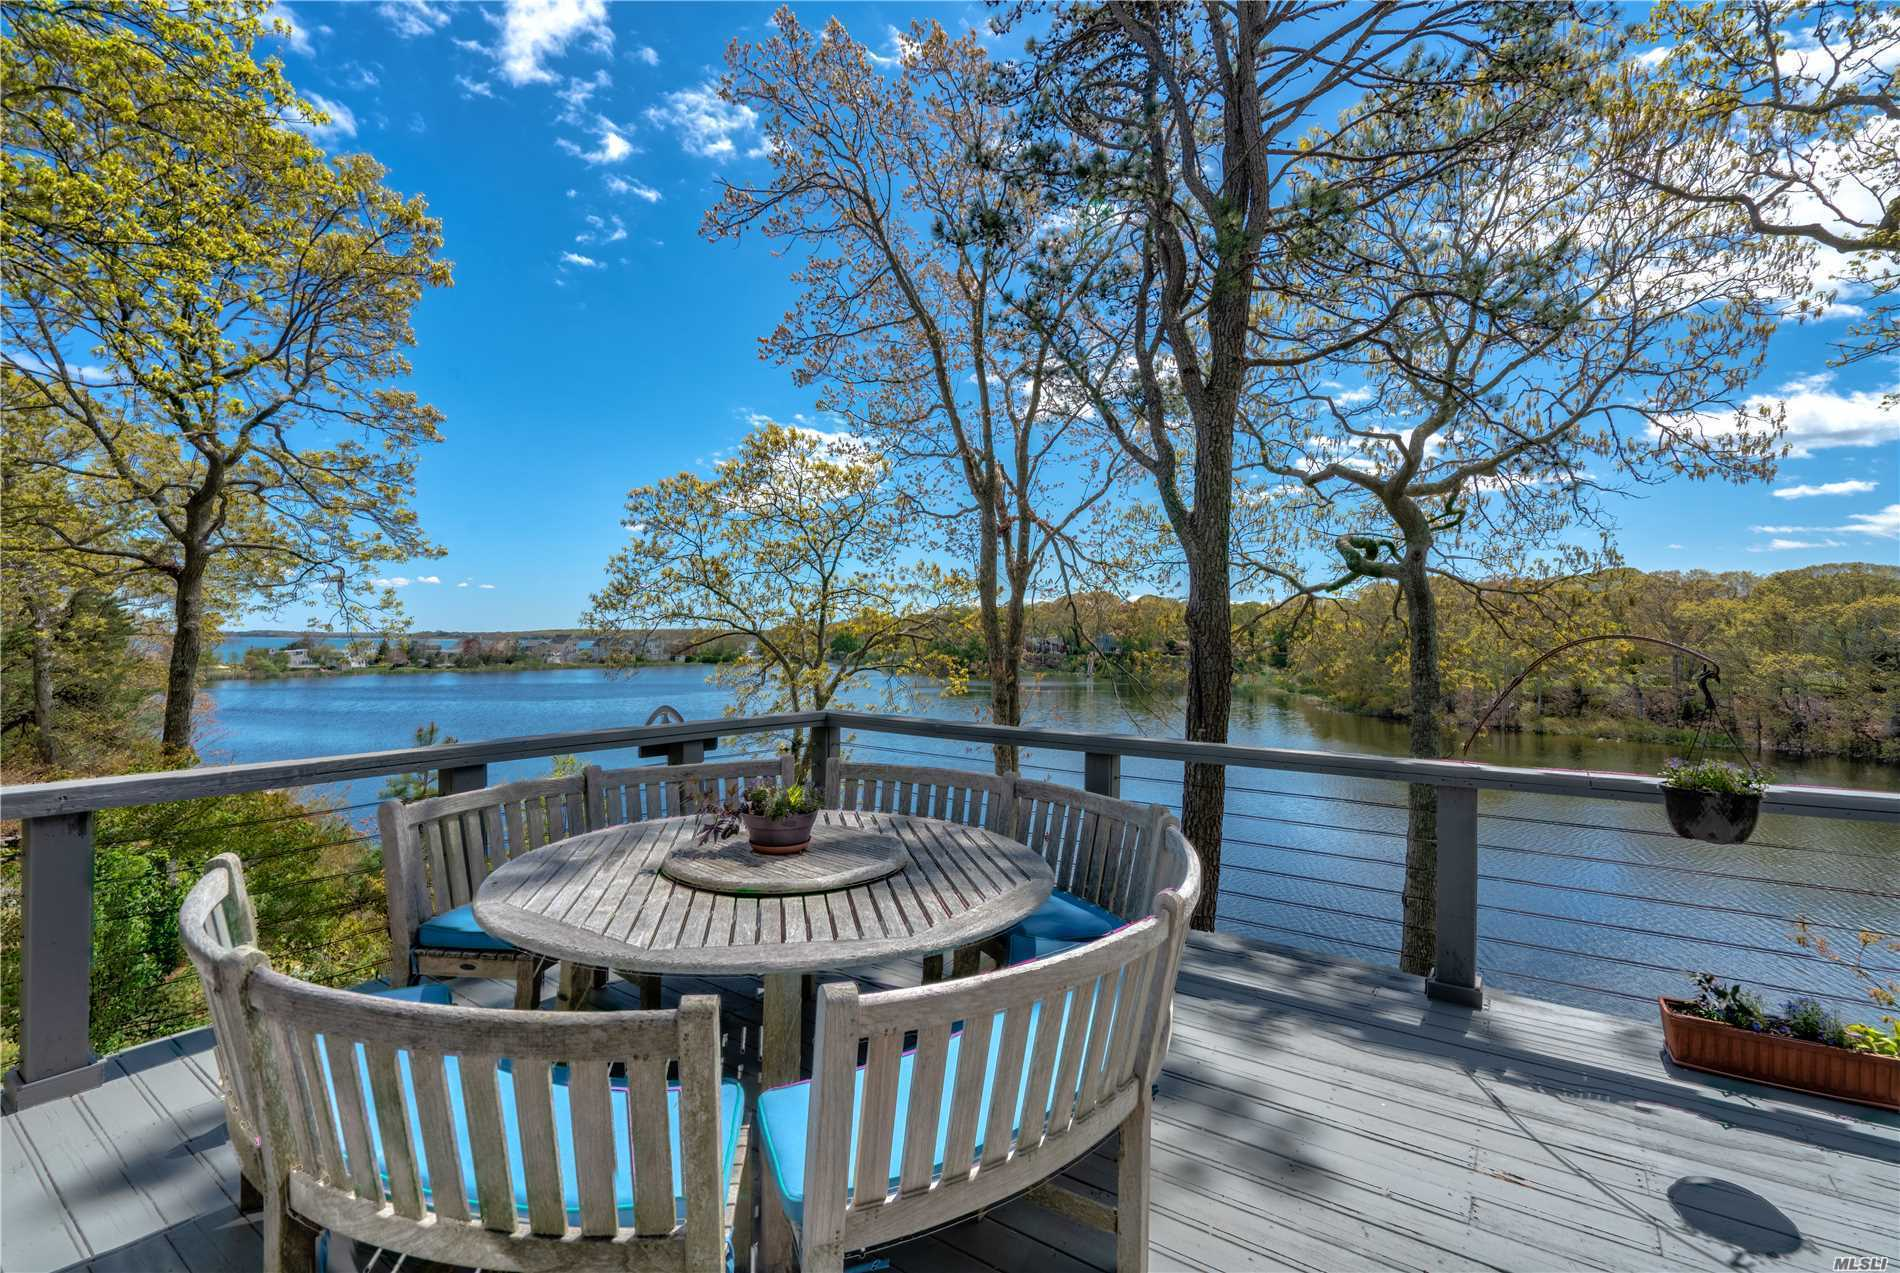 Stylish & Spacious. This renovated Waterfront Home on Marion Lake offers 4 Ensuites w/Expansive Views of the Lake & Beyond. Each Level Has Open Floor Plan W/Fireplace & Sliders to Waterside Decks. Large, Light-Filled Entertainment Spaces. Property is Beautifully Landscaped. There is a Dock on the Lake & Deeded Beach at the End of Truman's Path.